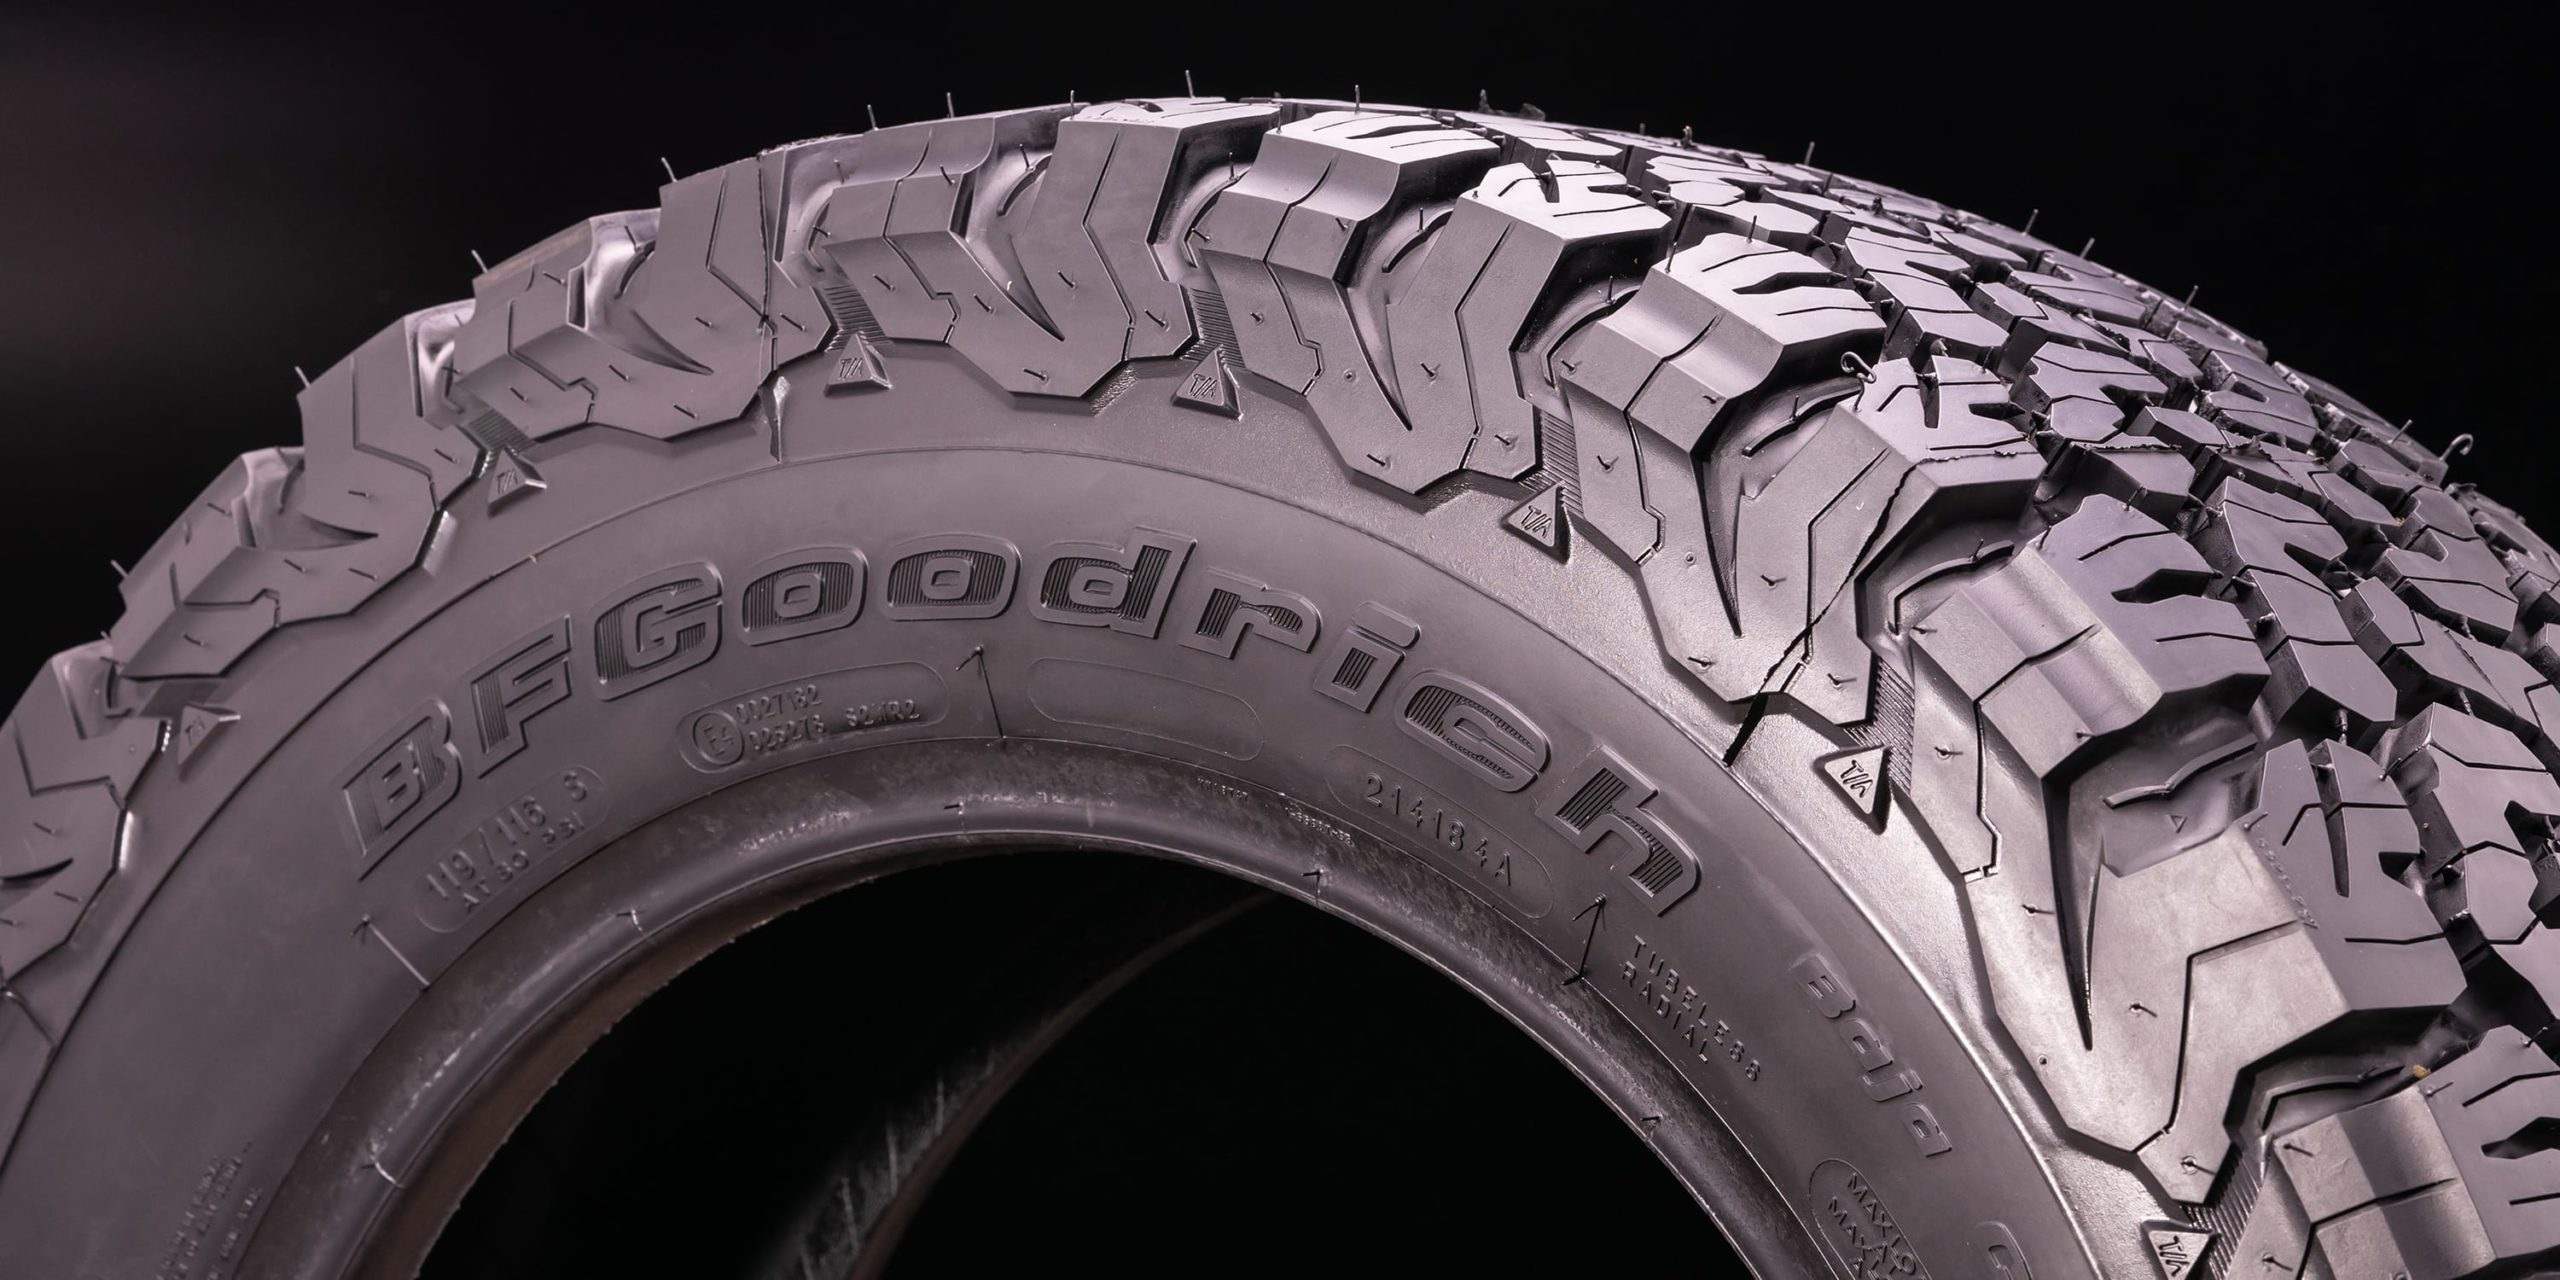 Get the guaranteed lowest price on BF Goodrich All Terrain KO2 tires at Suburban Tire.